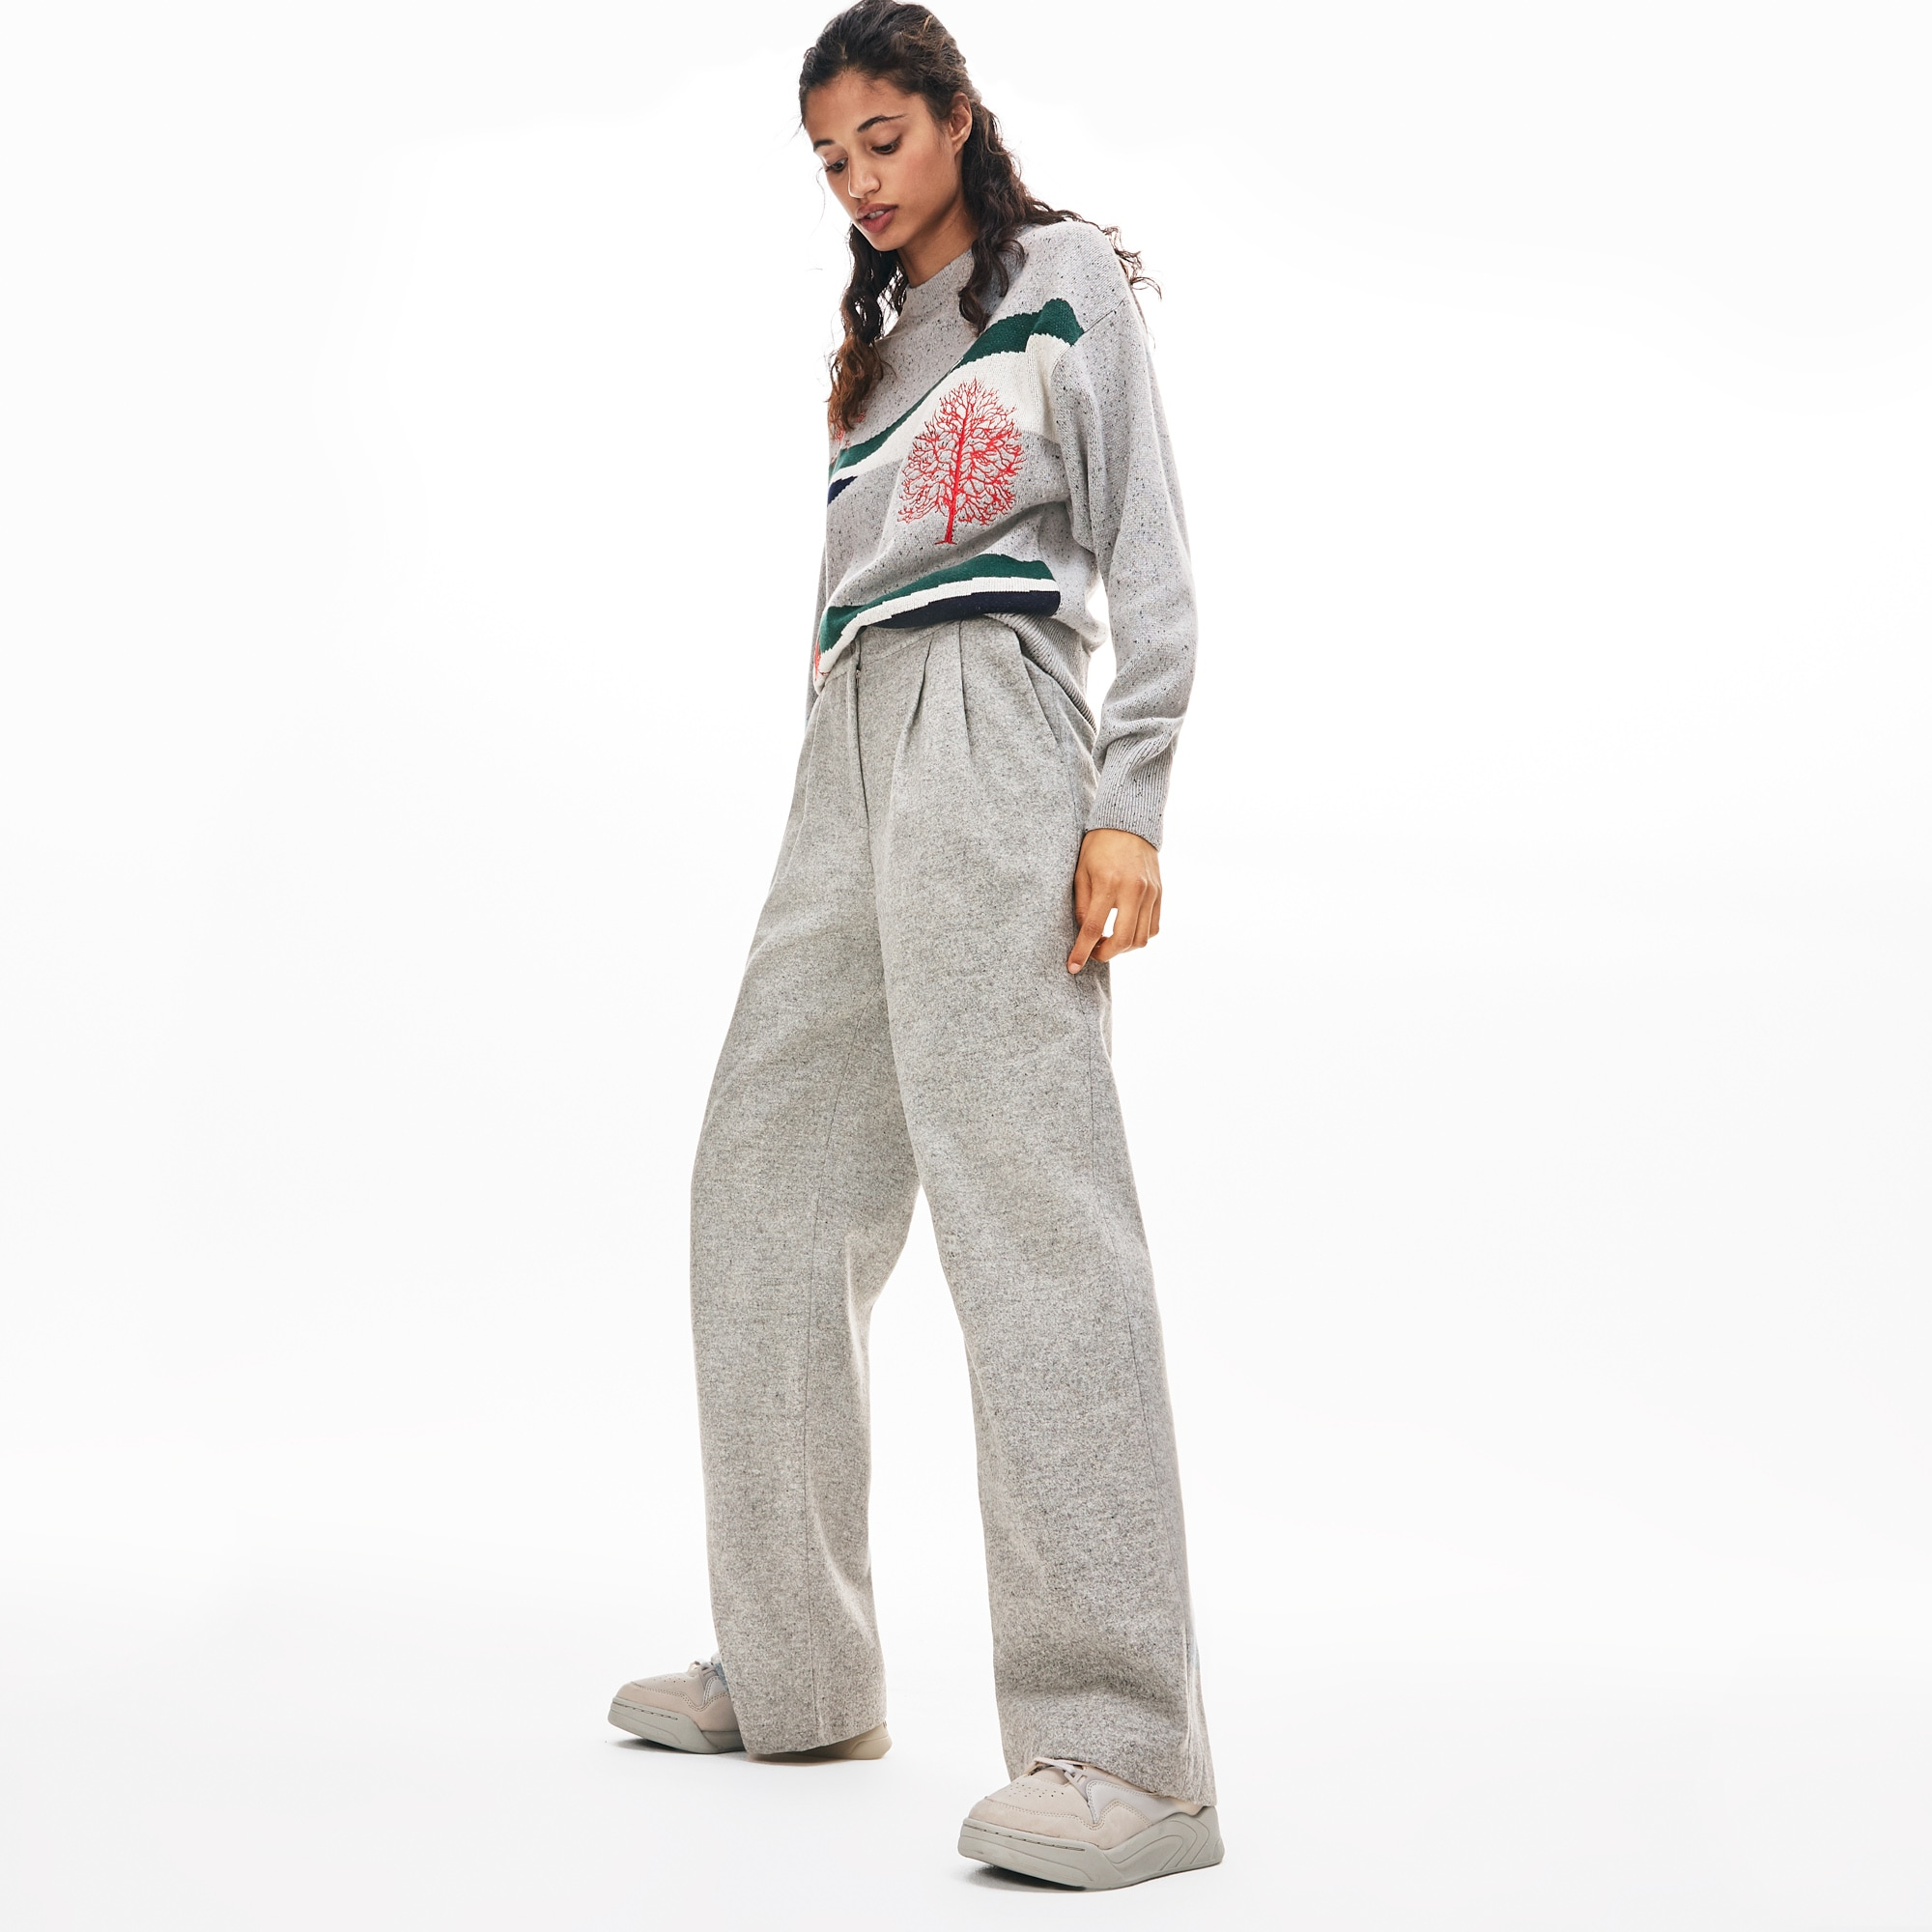 Lacoste Pants Women's Loose Pleated Wool And Cashmere Flannel Pants